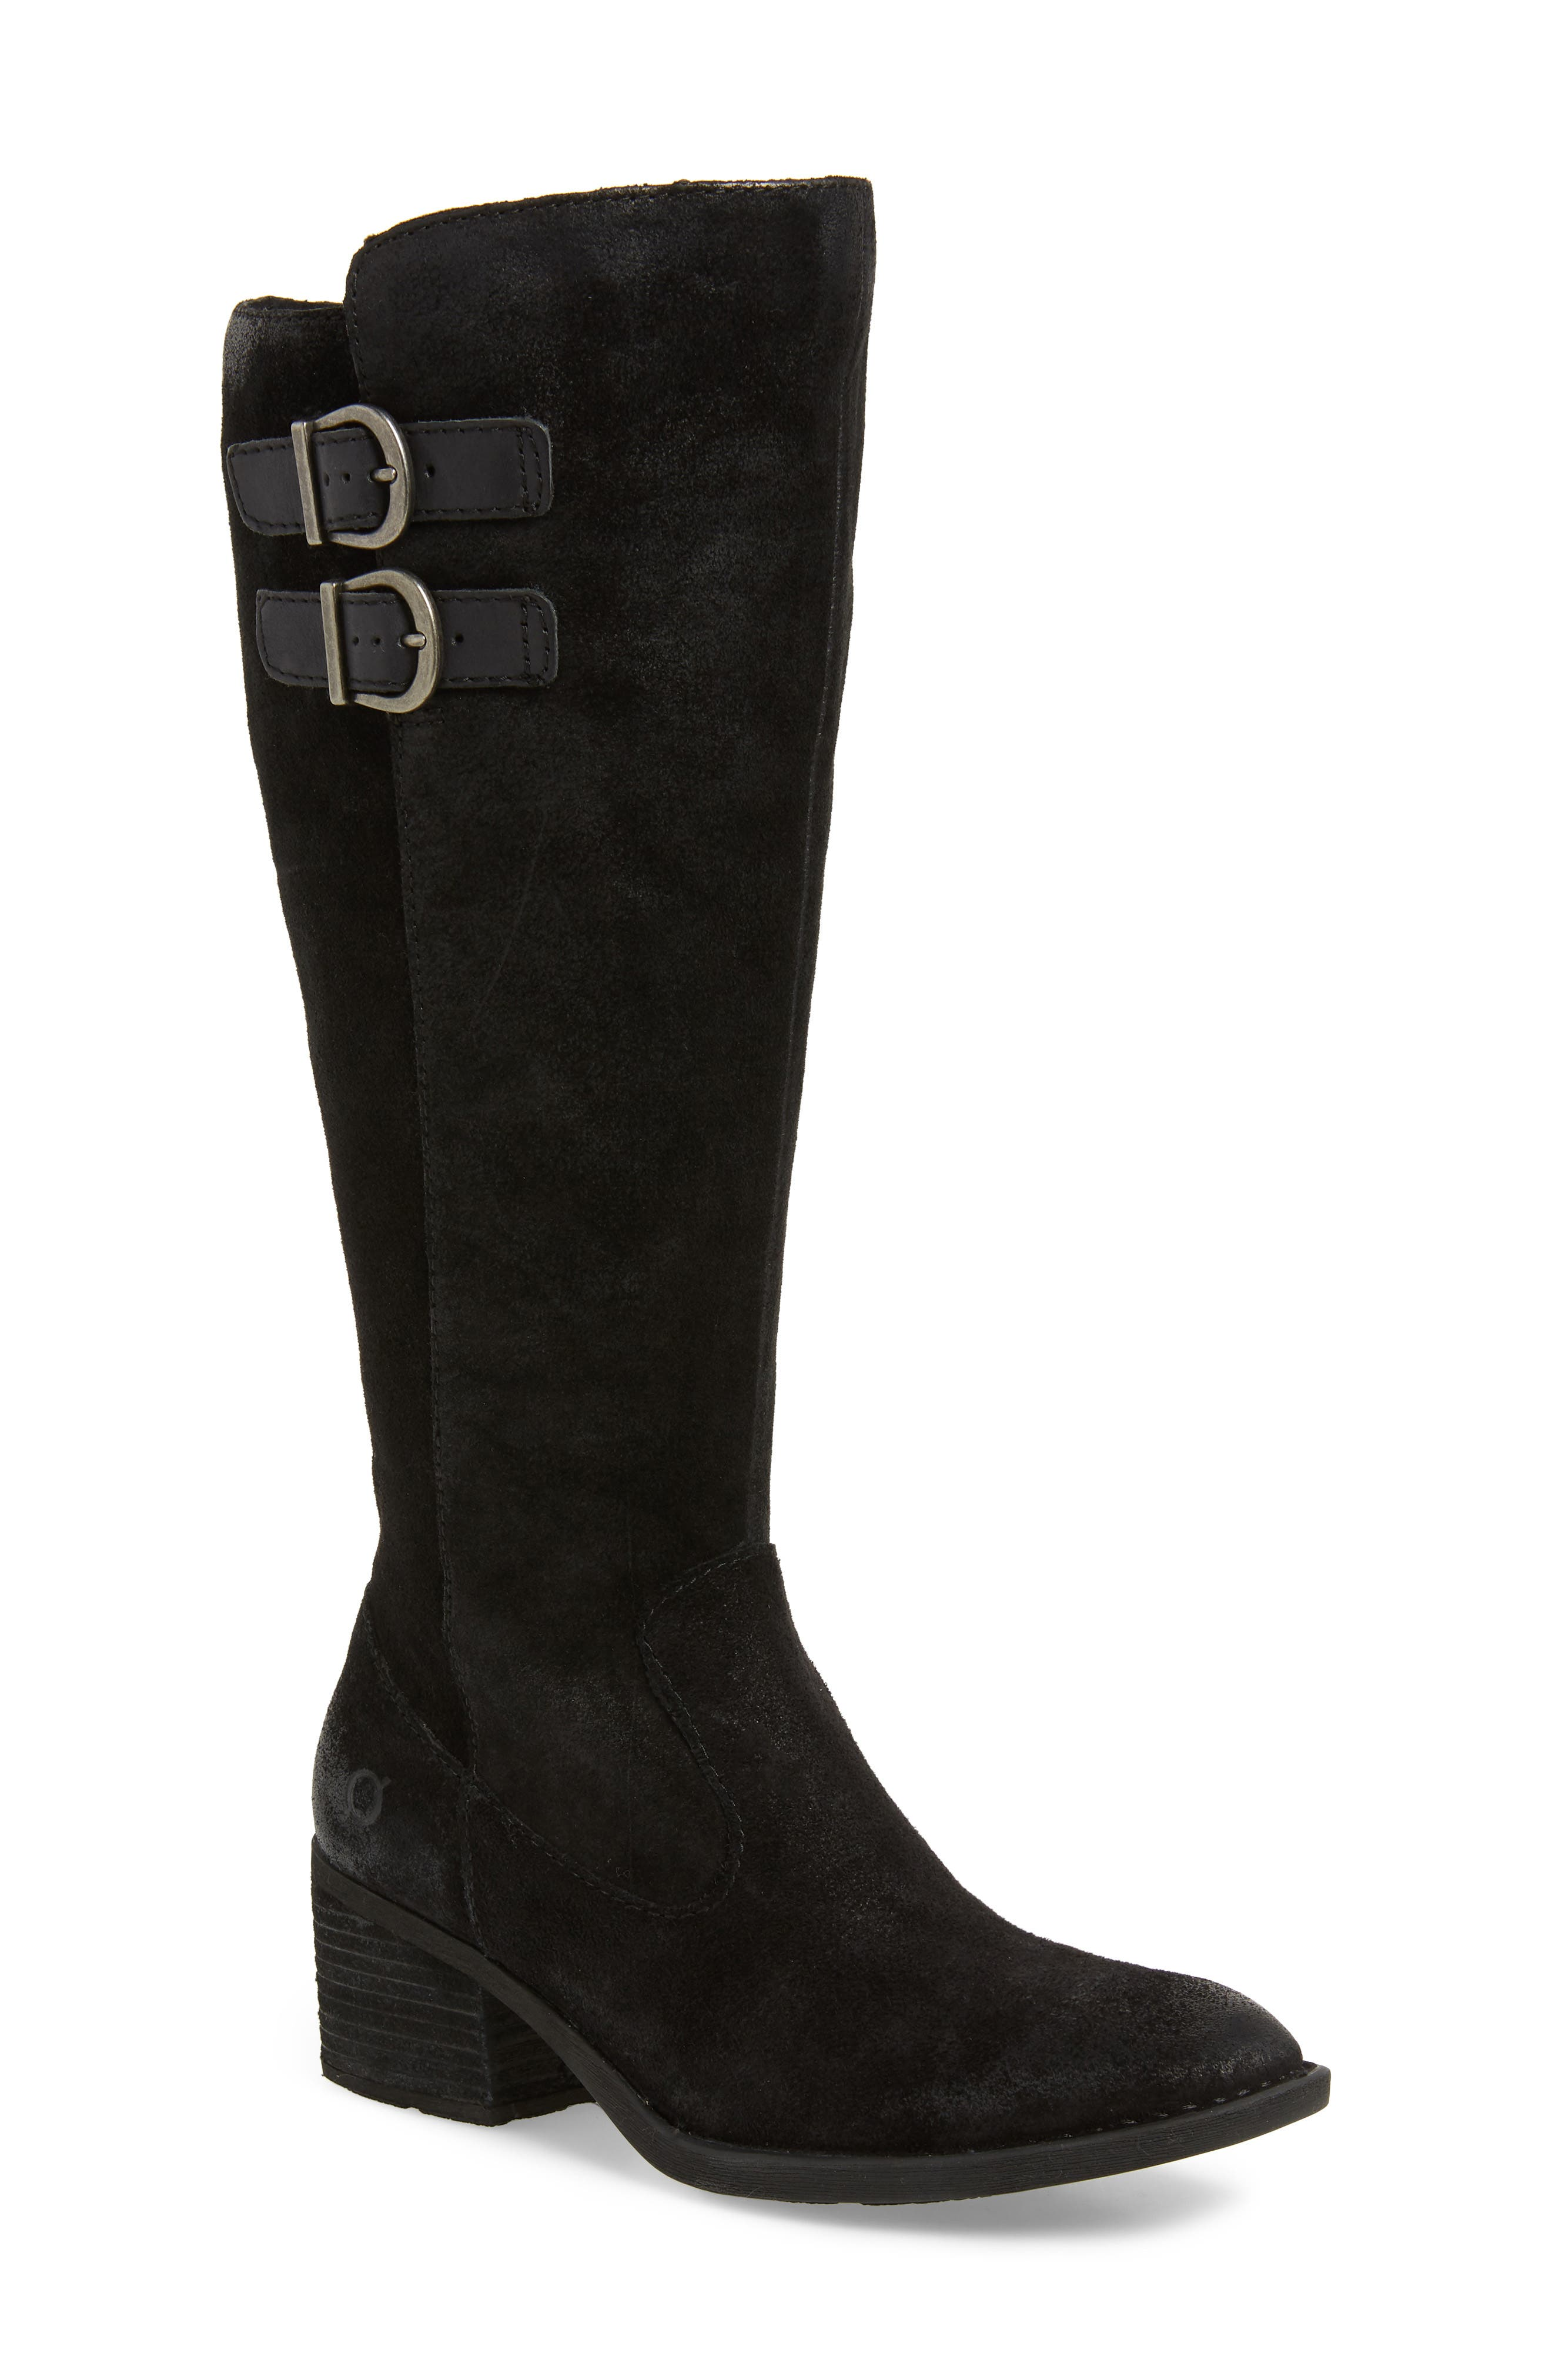 BØRN, Basil Knee High Boot, Main thumbnail 1, color, BLACK DISTRESSED LEATHER